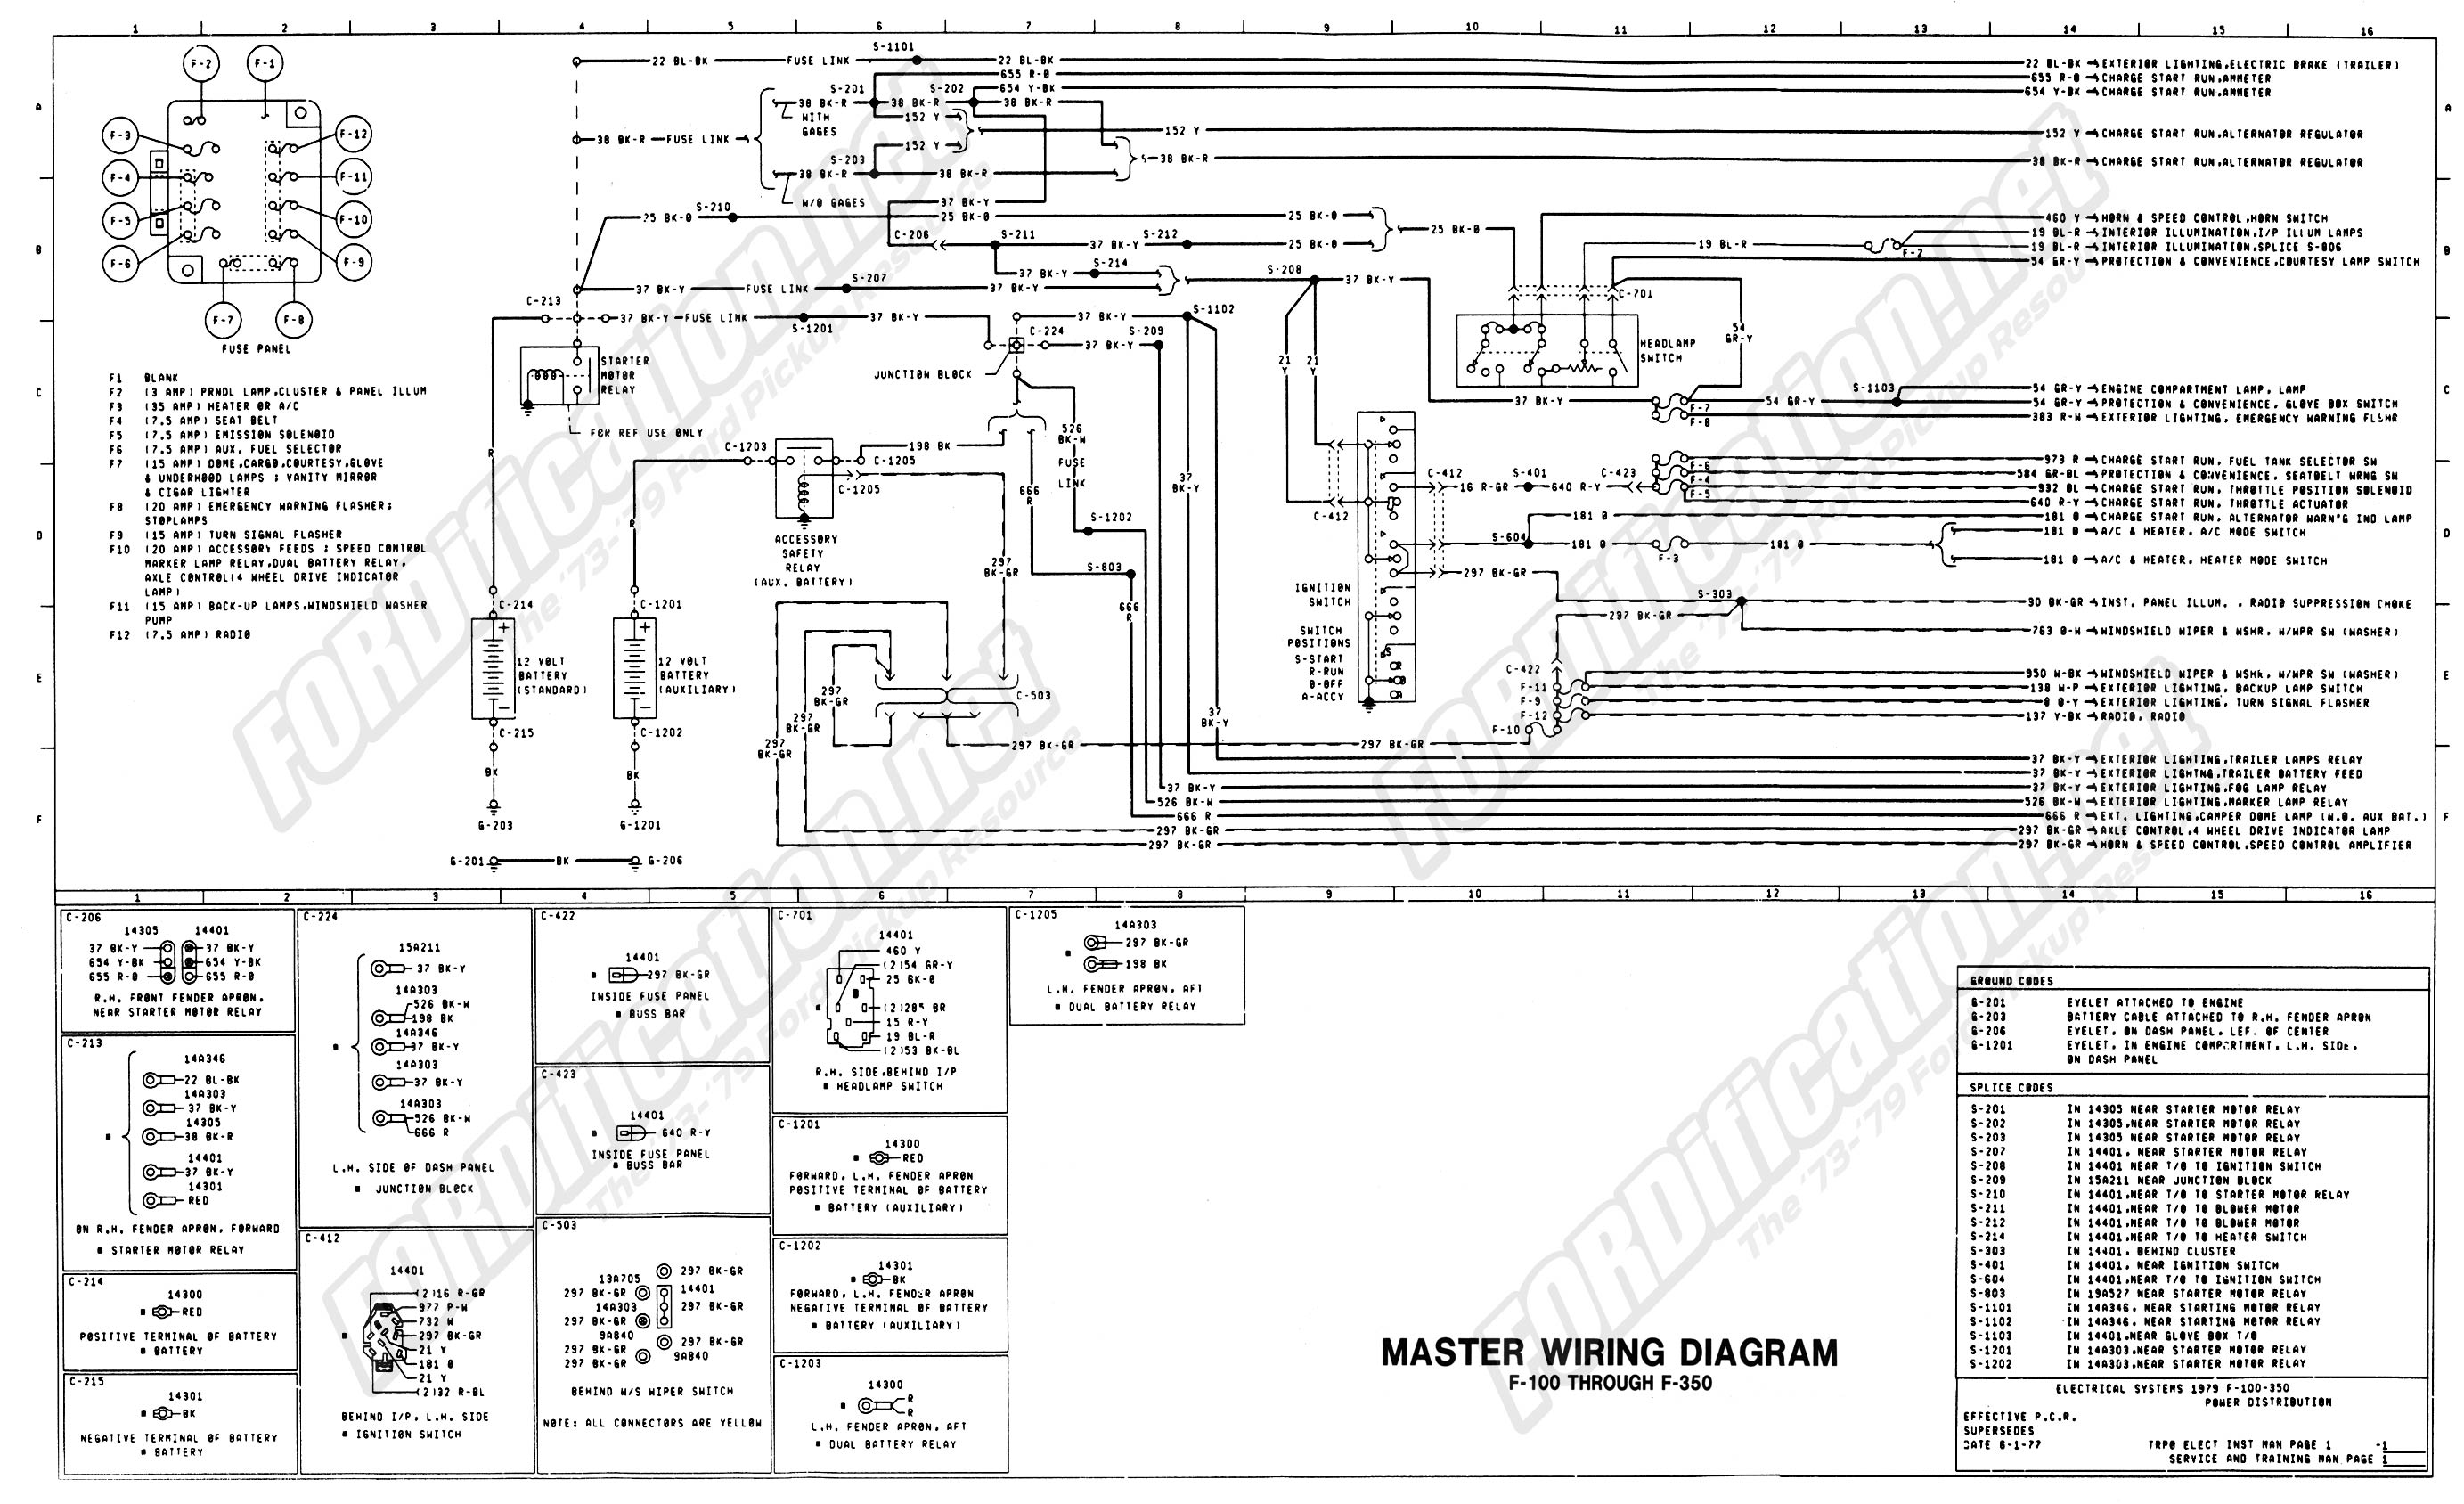 wiring_79master_1of9 truck wiring diagram 1986 chevy truck wiring diagram \u2022 free wiring 1946 ford truck wiring diagram at eliteediting.co